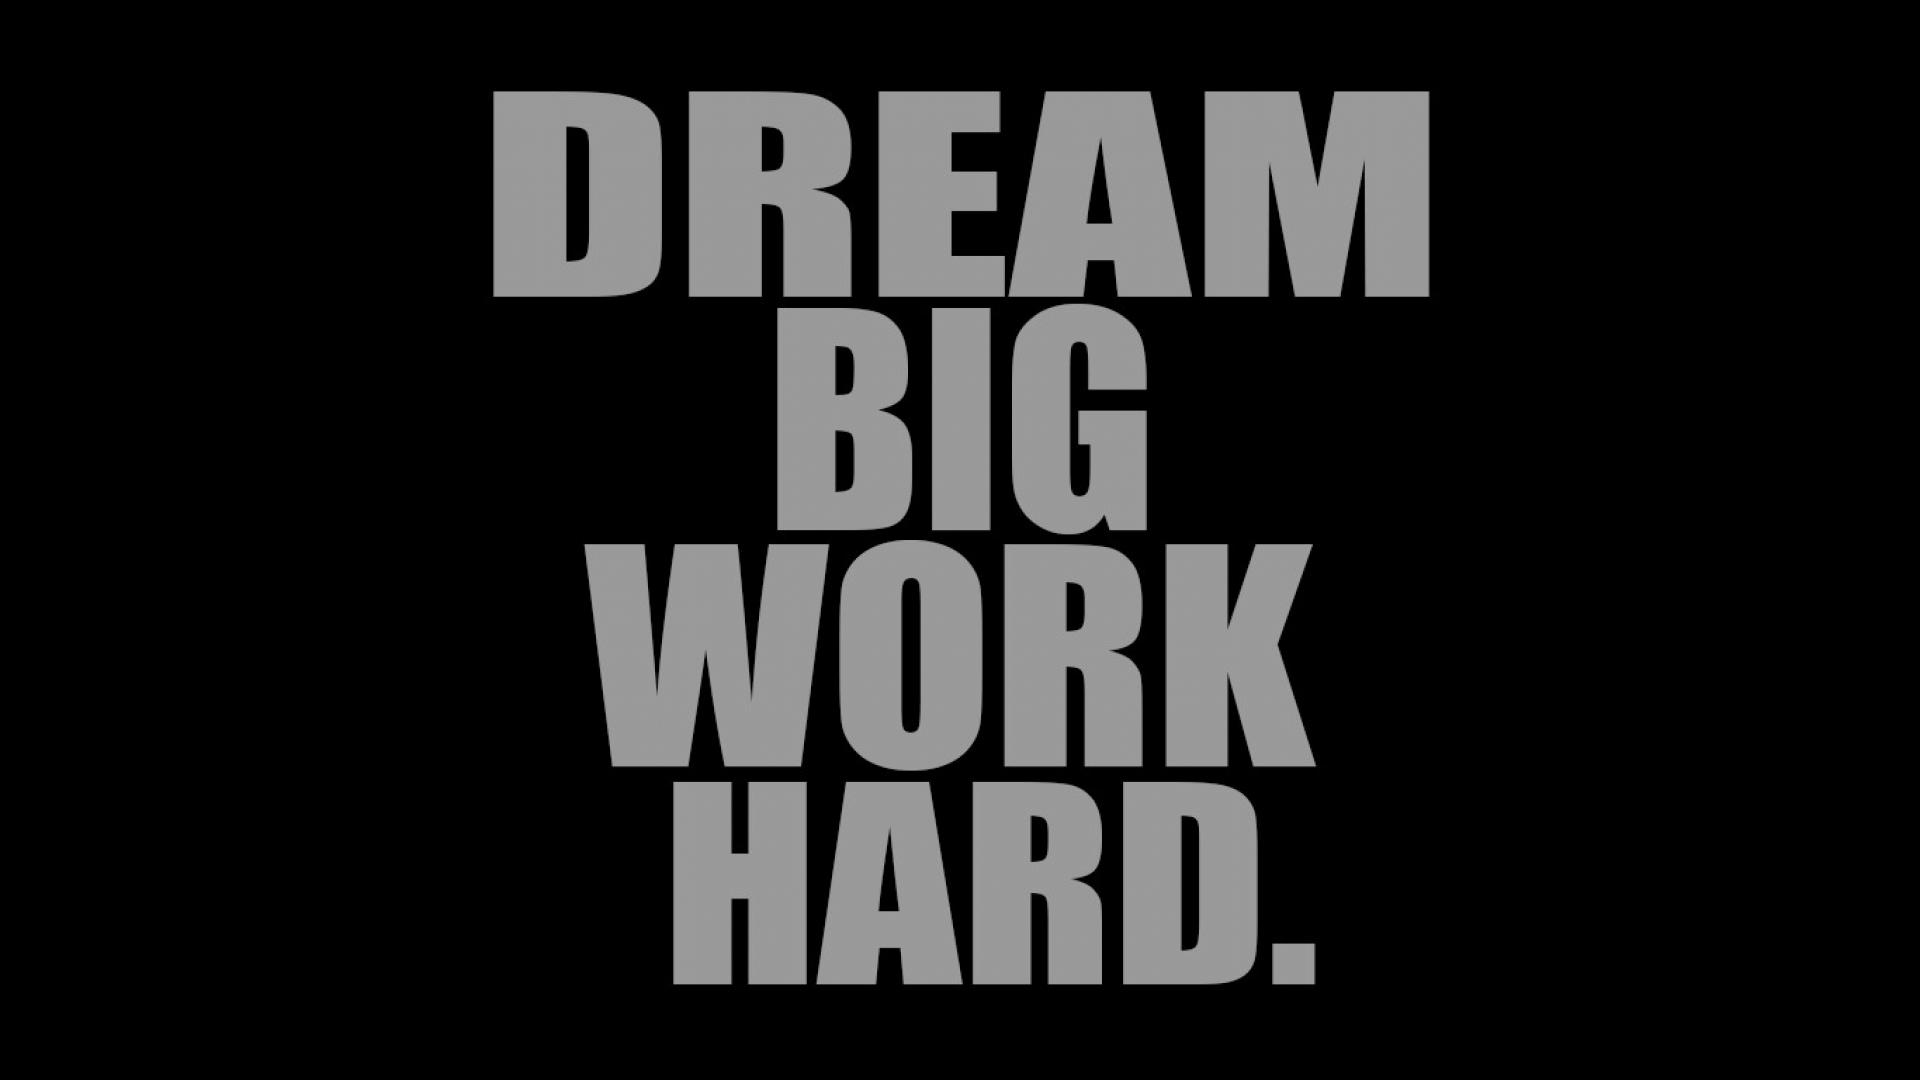 Hard motivational quotes word work wallpaper 87547 1920x1080